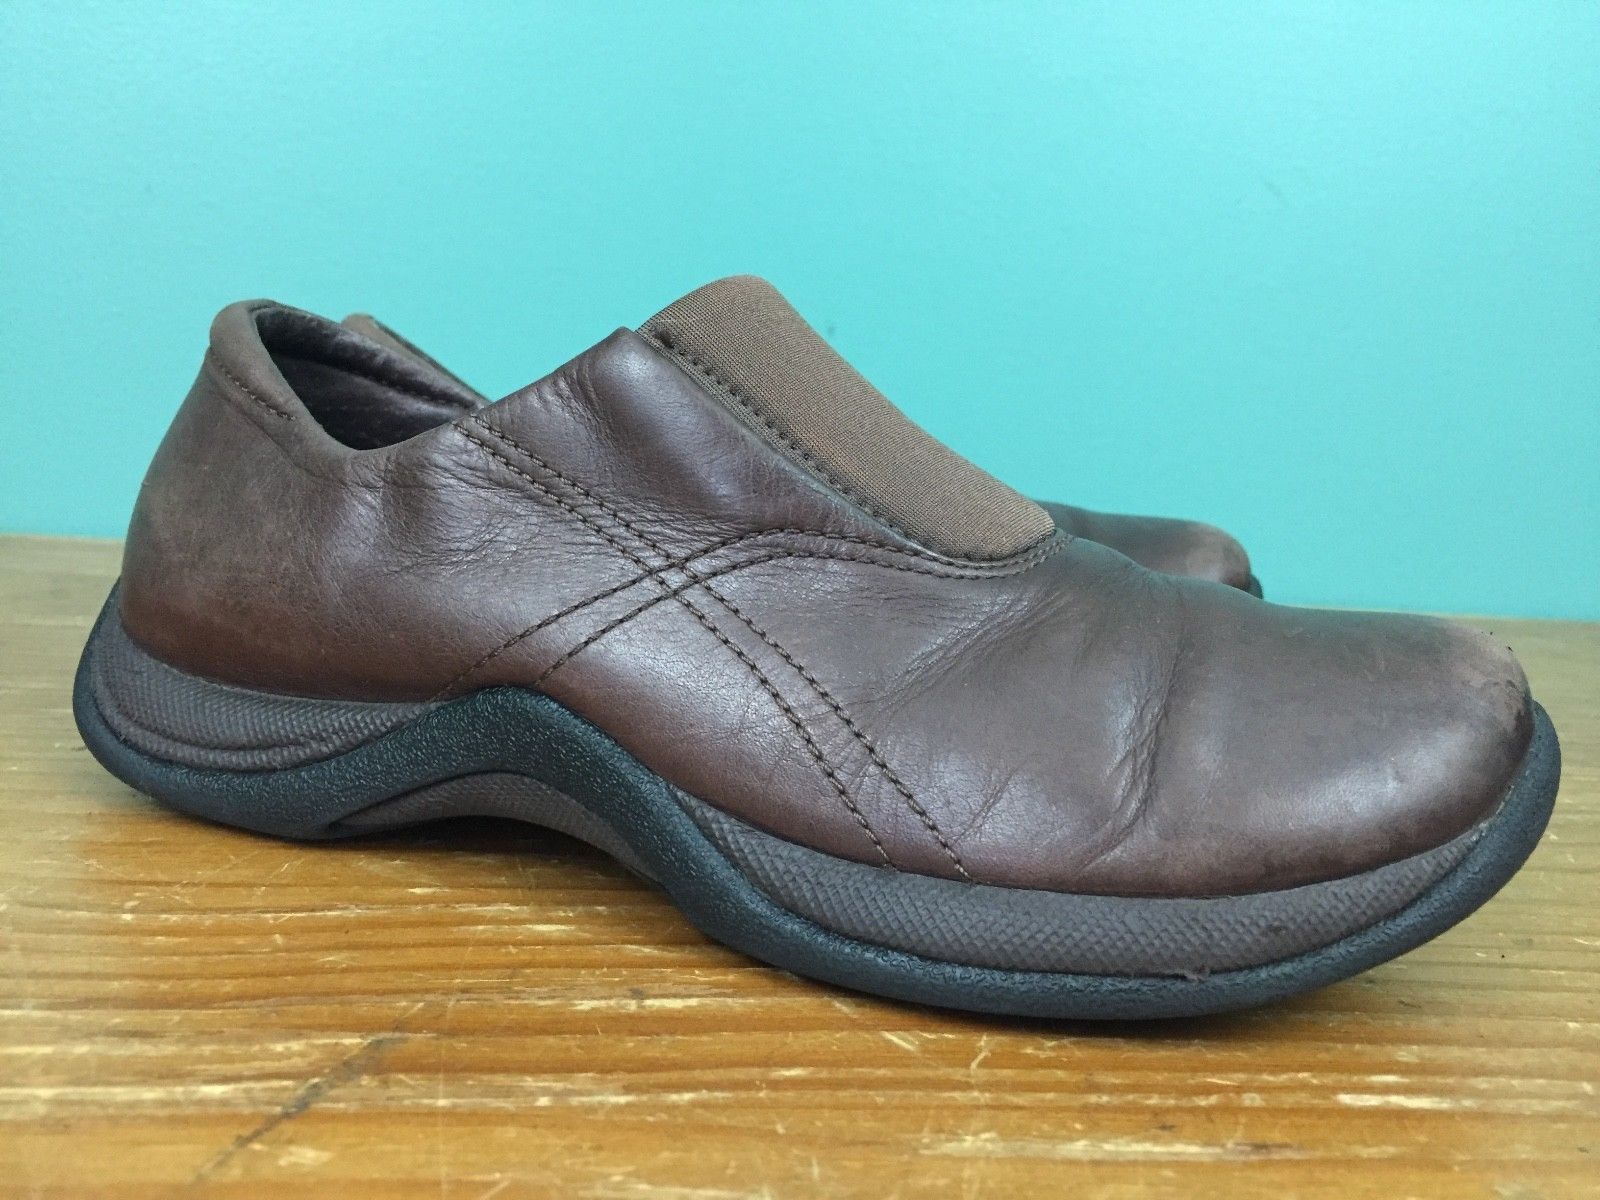 0973a91f4bb S l1600. S l1600. Previous. Clarks Springers Women s Leather Slip On  Walking Shoes - Size 8 M - Brown